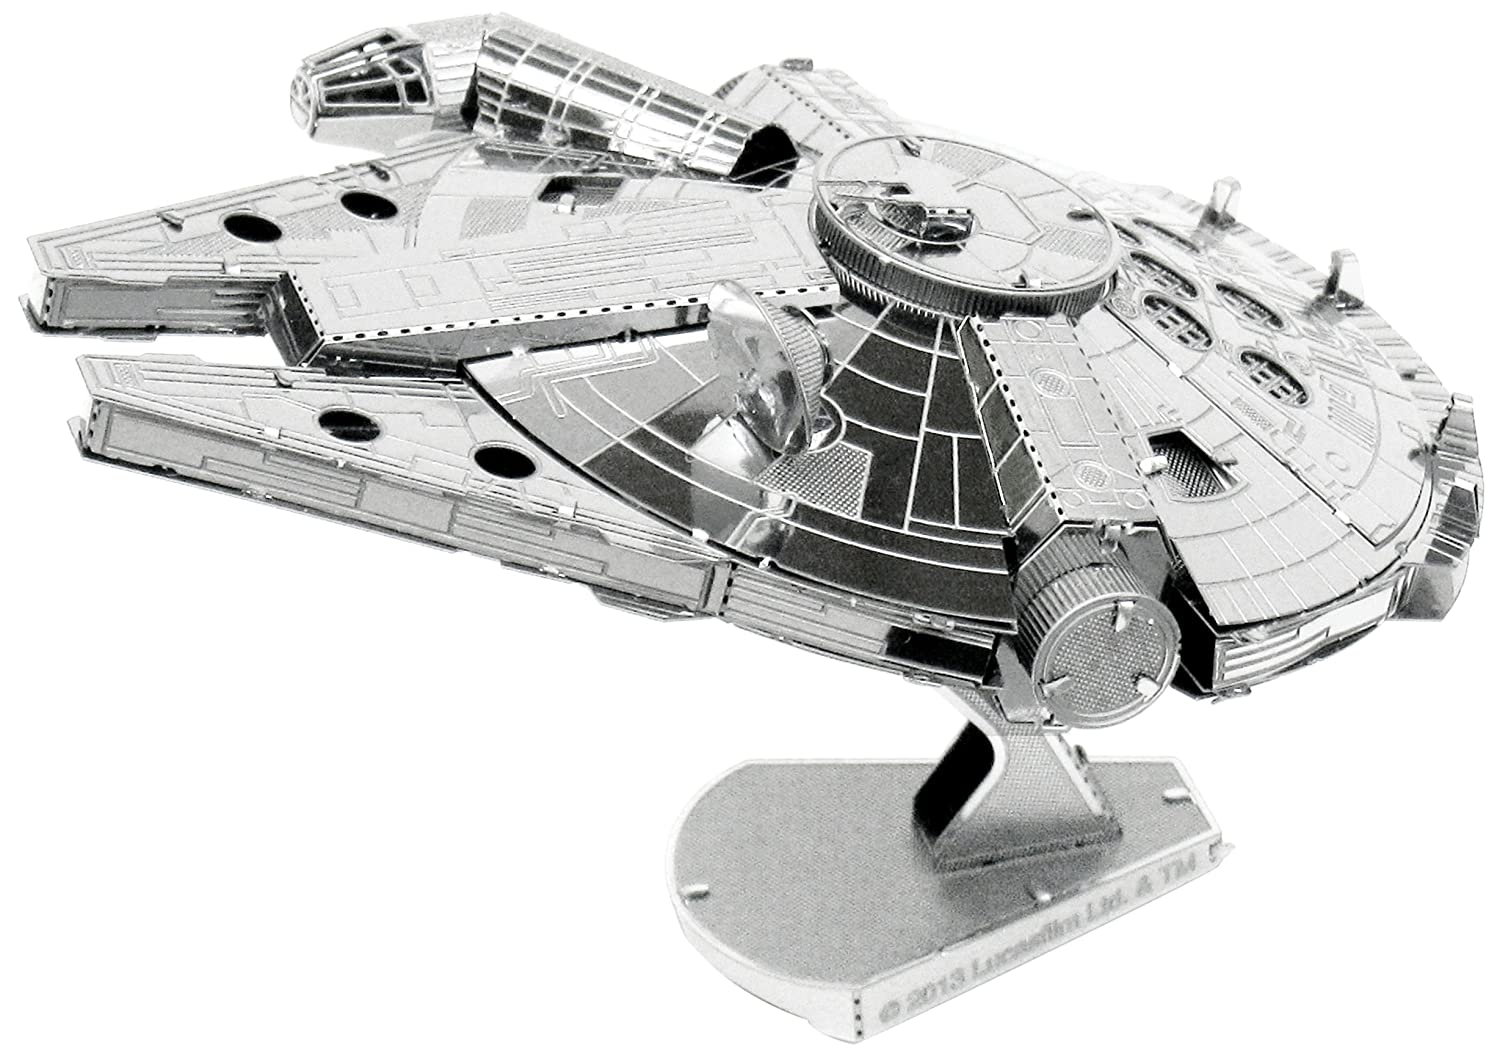 http://www.amazon.com/Amoin-Metal-Earth-Millennium-Falcon/dp/B00GY8S8MO/ref=sr_1_1?ie=UTF8&qid=1436407149&sr=8-1&keywords=metal+earth